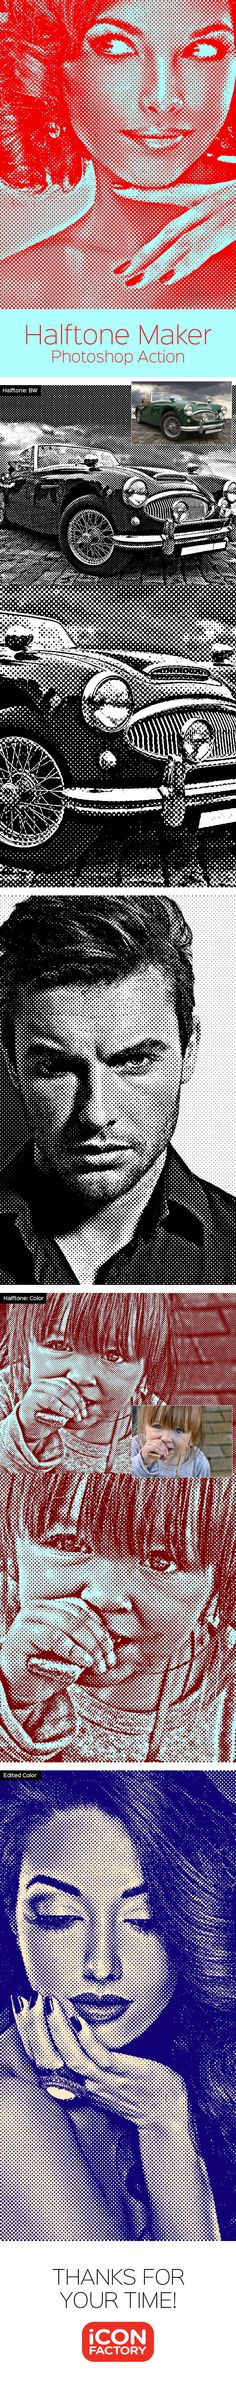 Halftone Maker - Photoshop Action - Photo Effects Actions